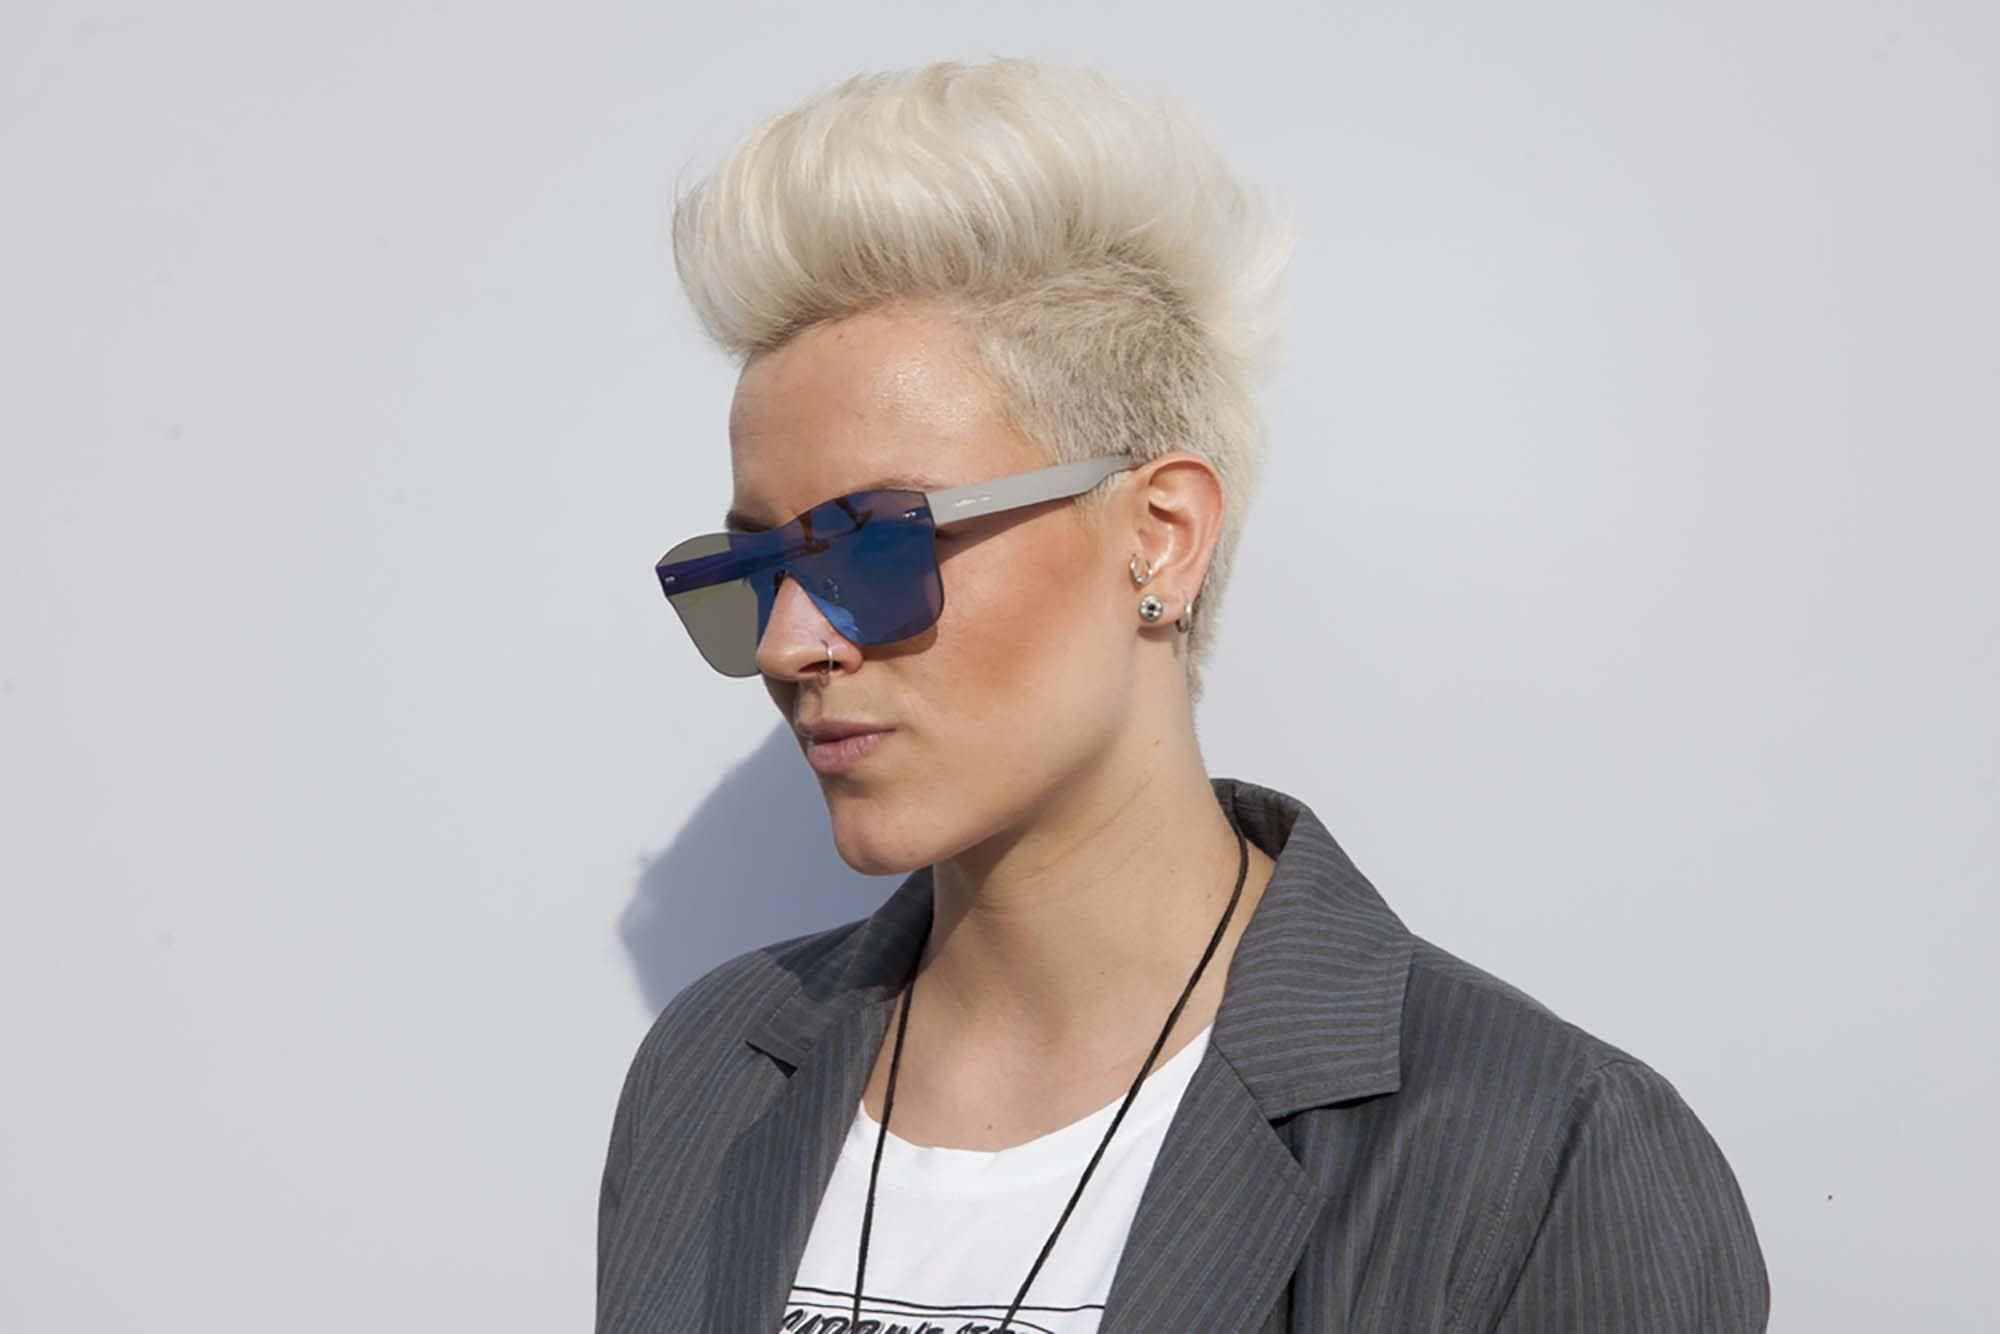 Short Spiky Haircuts For Women 5 Edgy Hair Trends For Short Hair